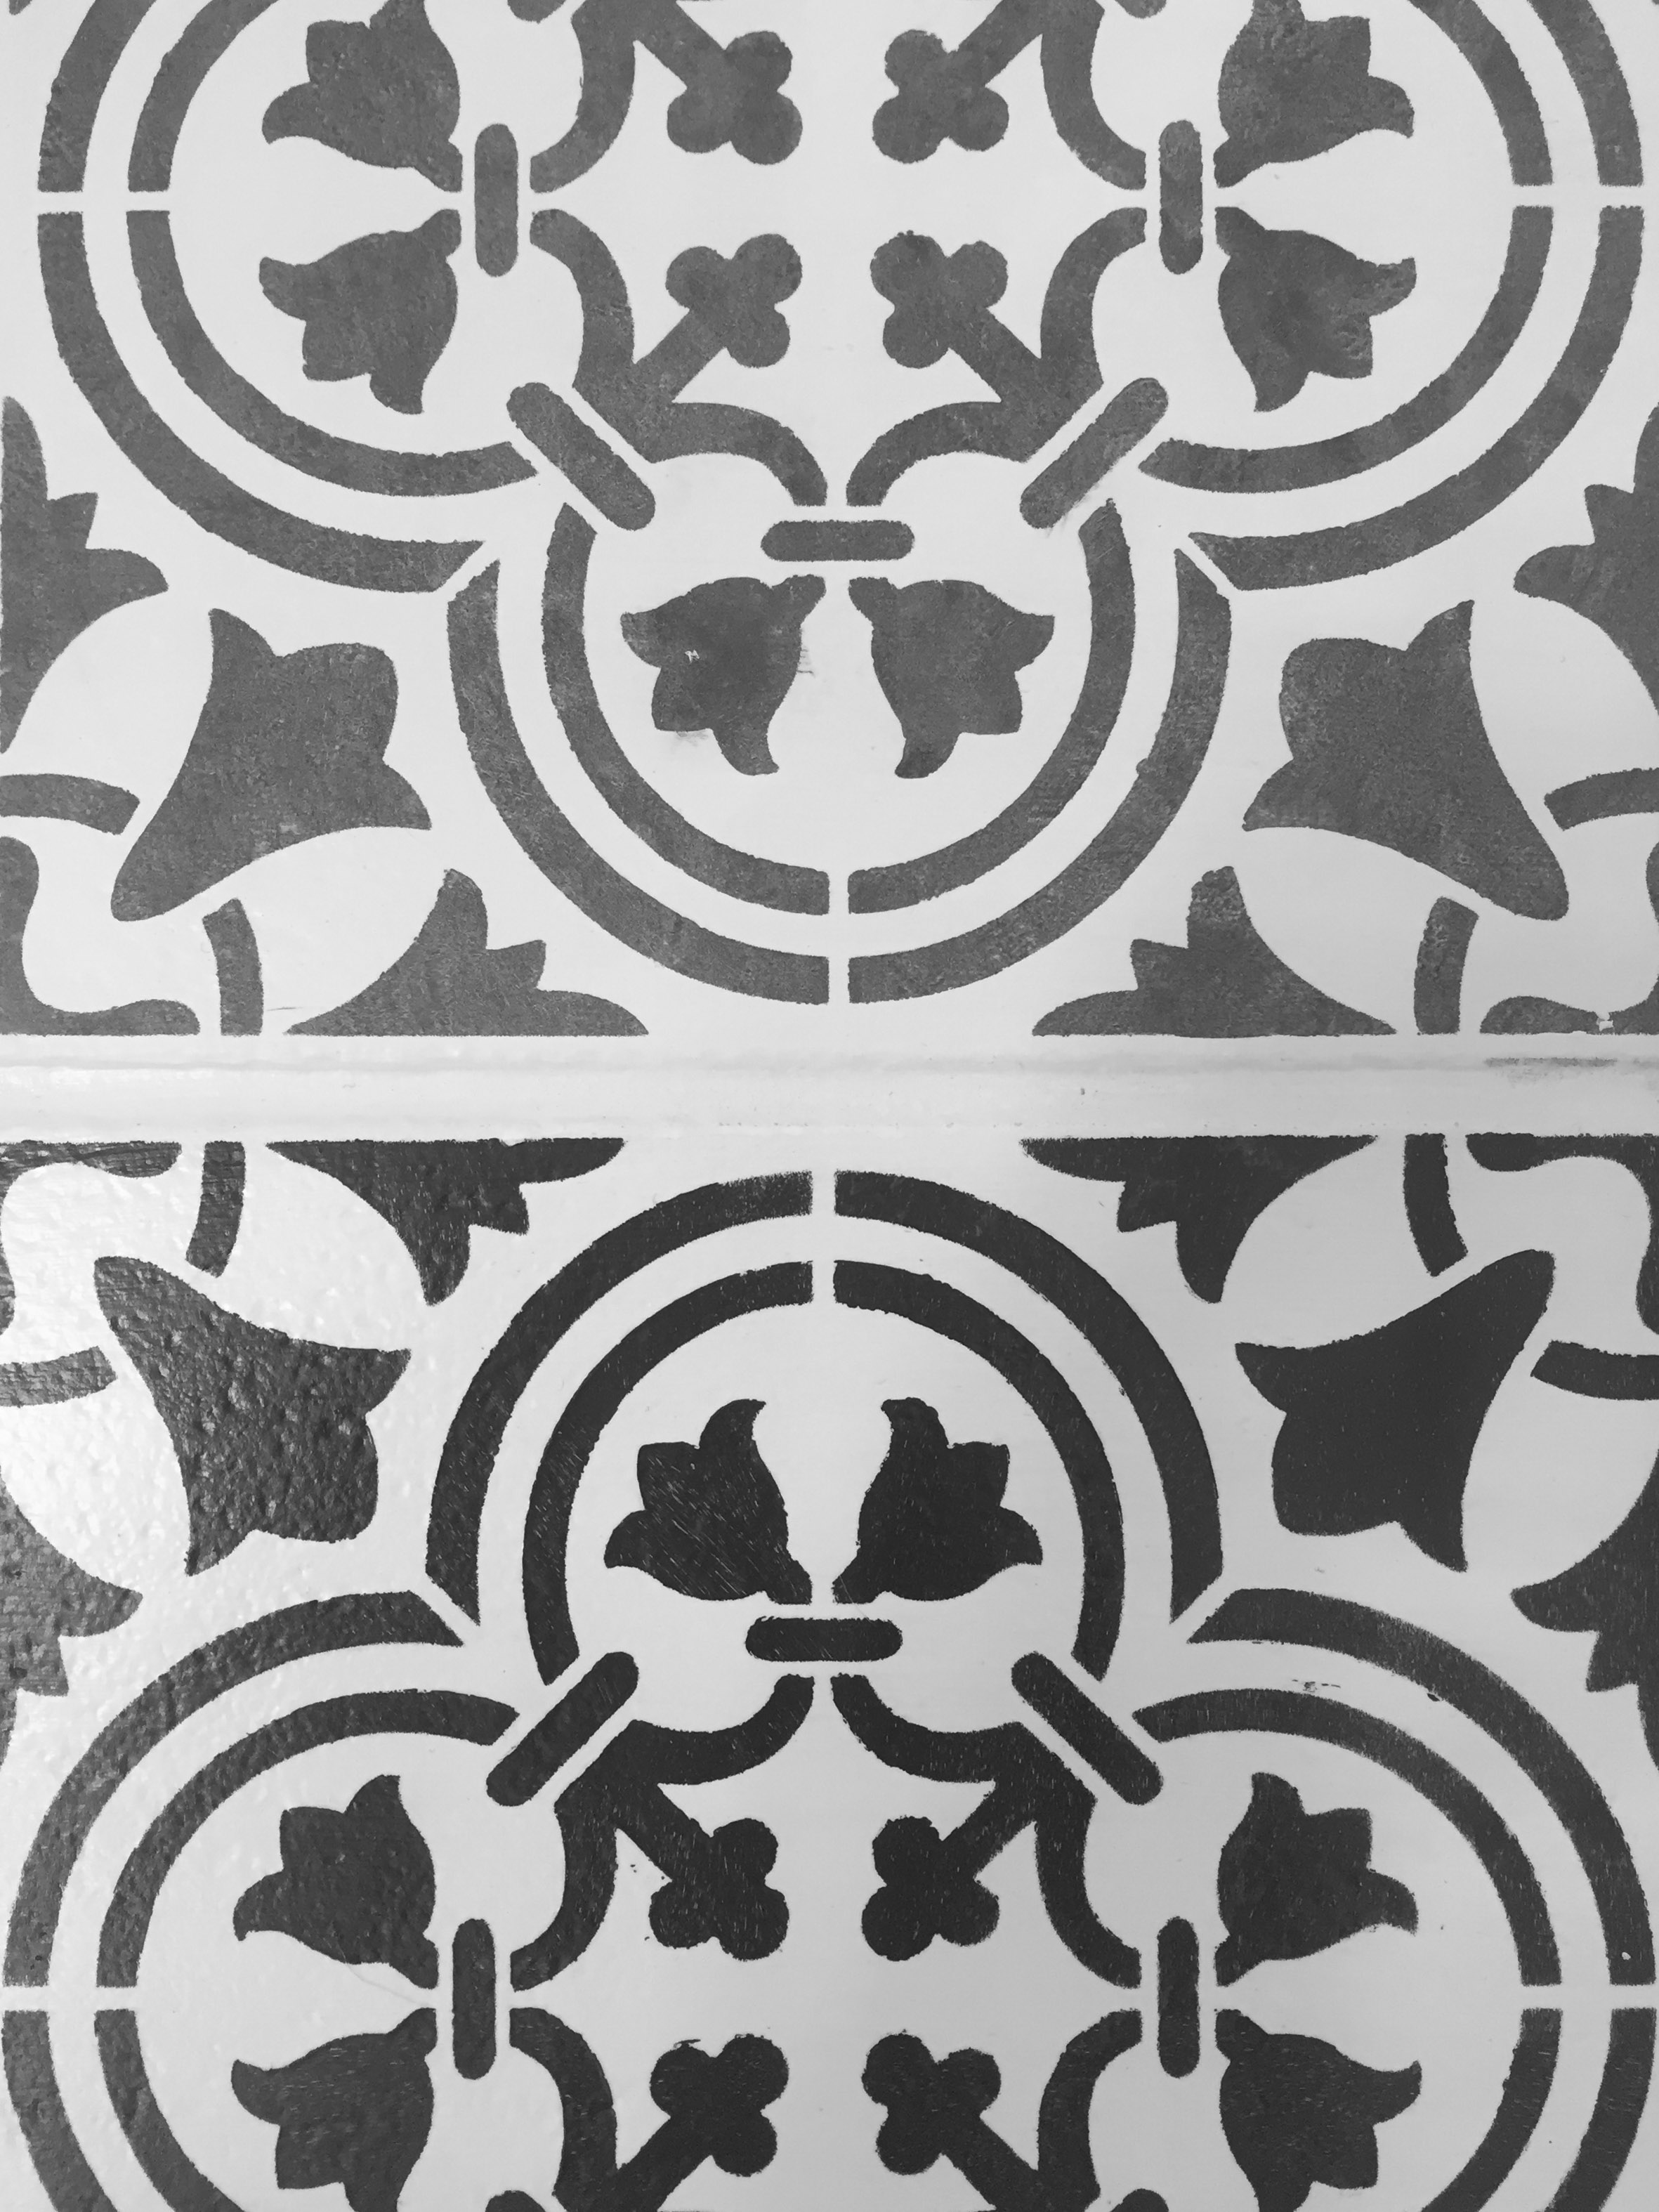 Top tile has been whitewashed, the bottom tile has not.  The whitewash gives it a much more authentic moroccan tile look!